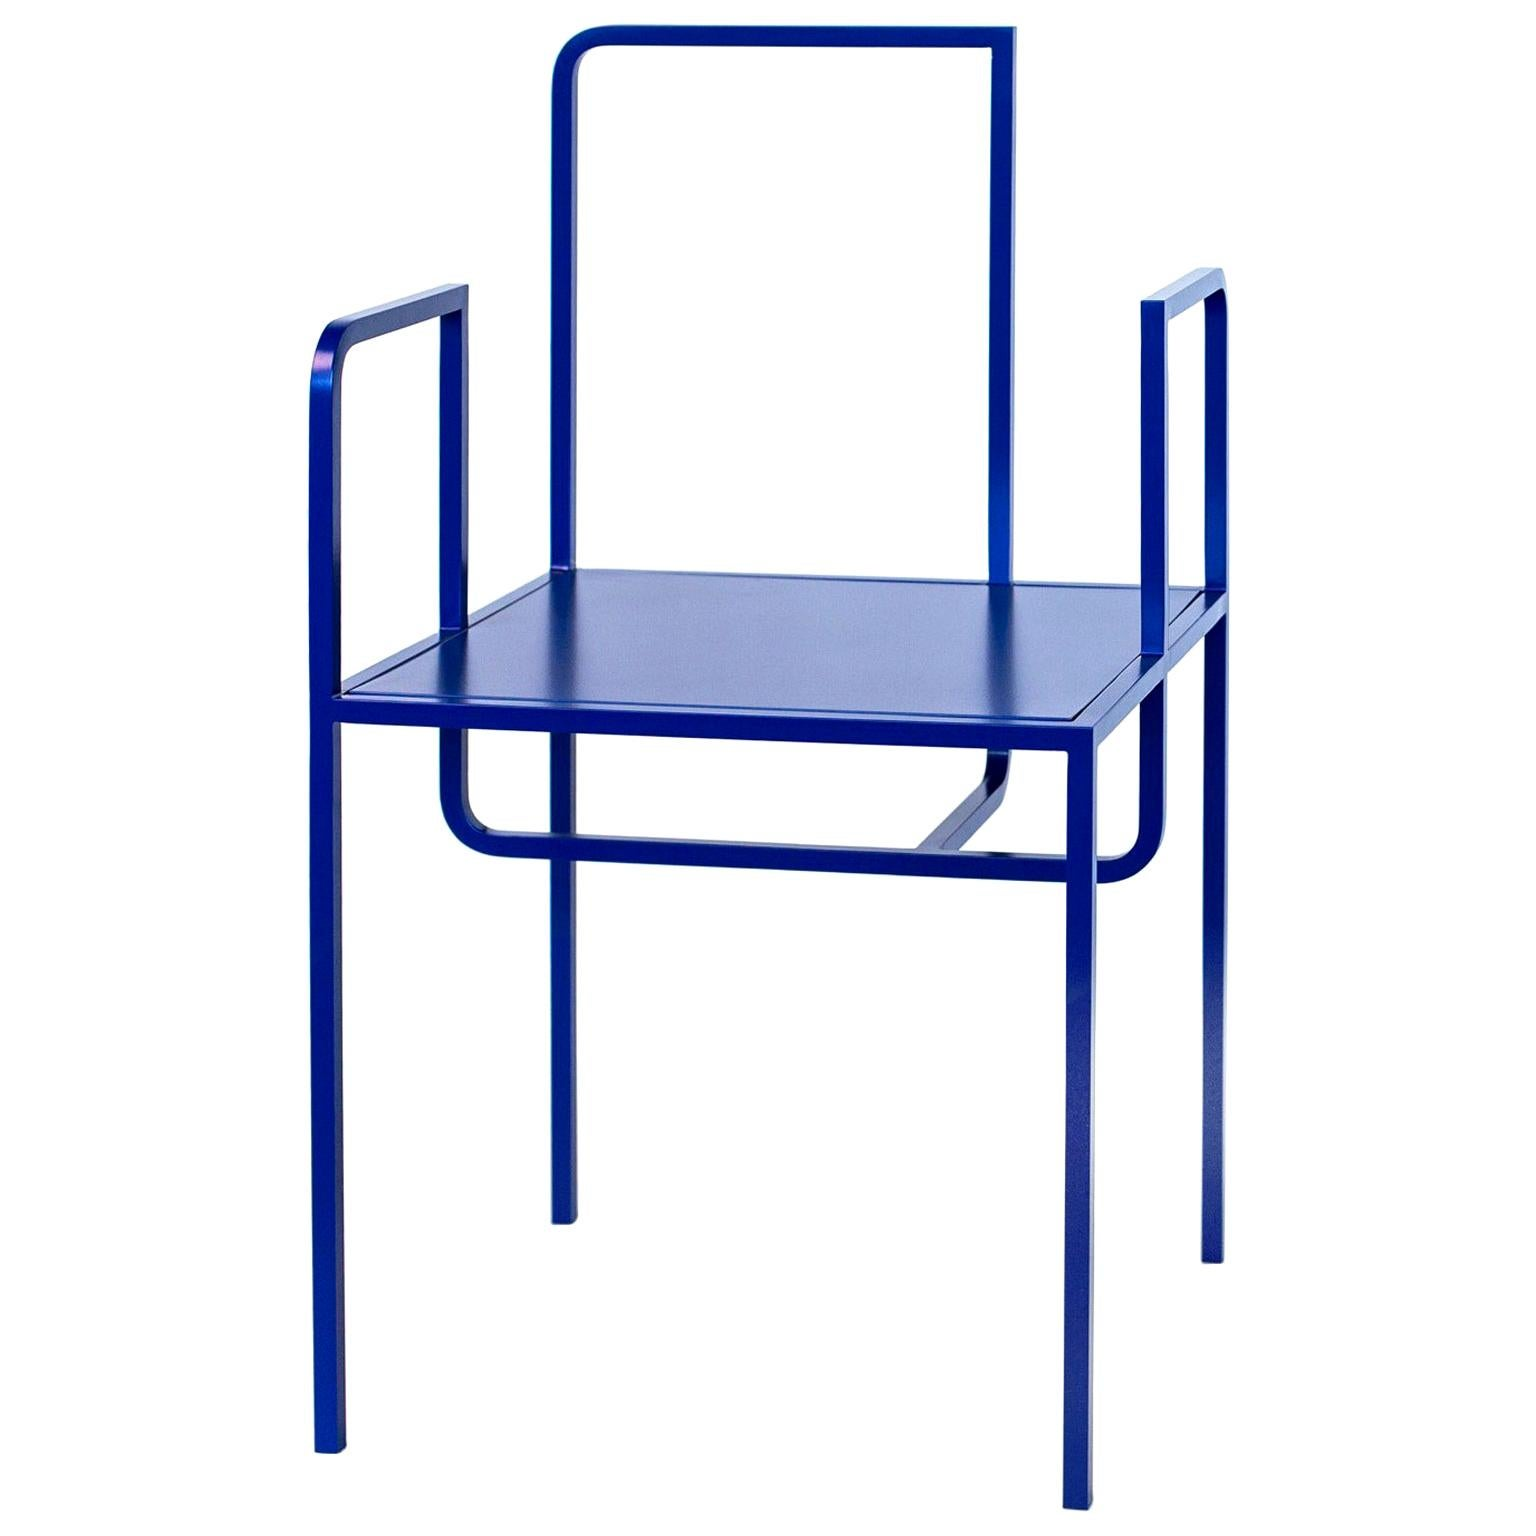 Contemporary  Chair WEI by Studio 1+11,  in Blue Edition ,21st Century  Germany